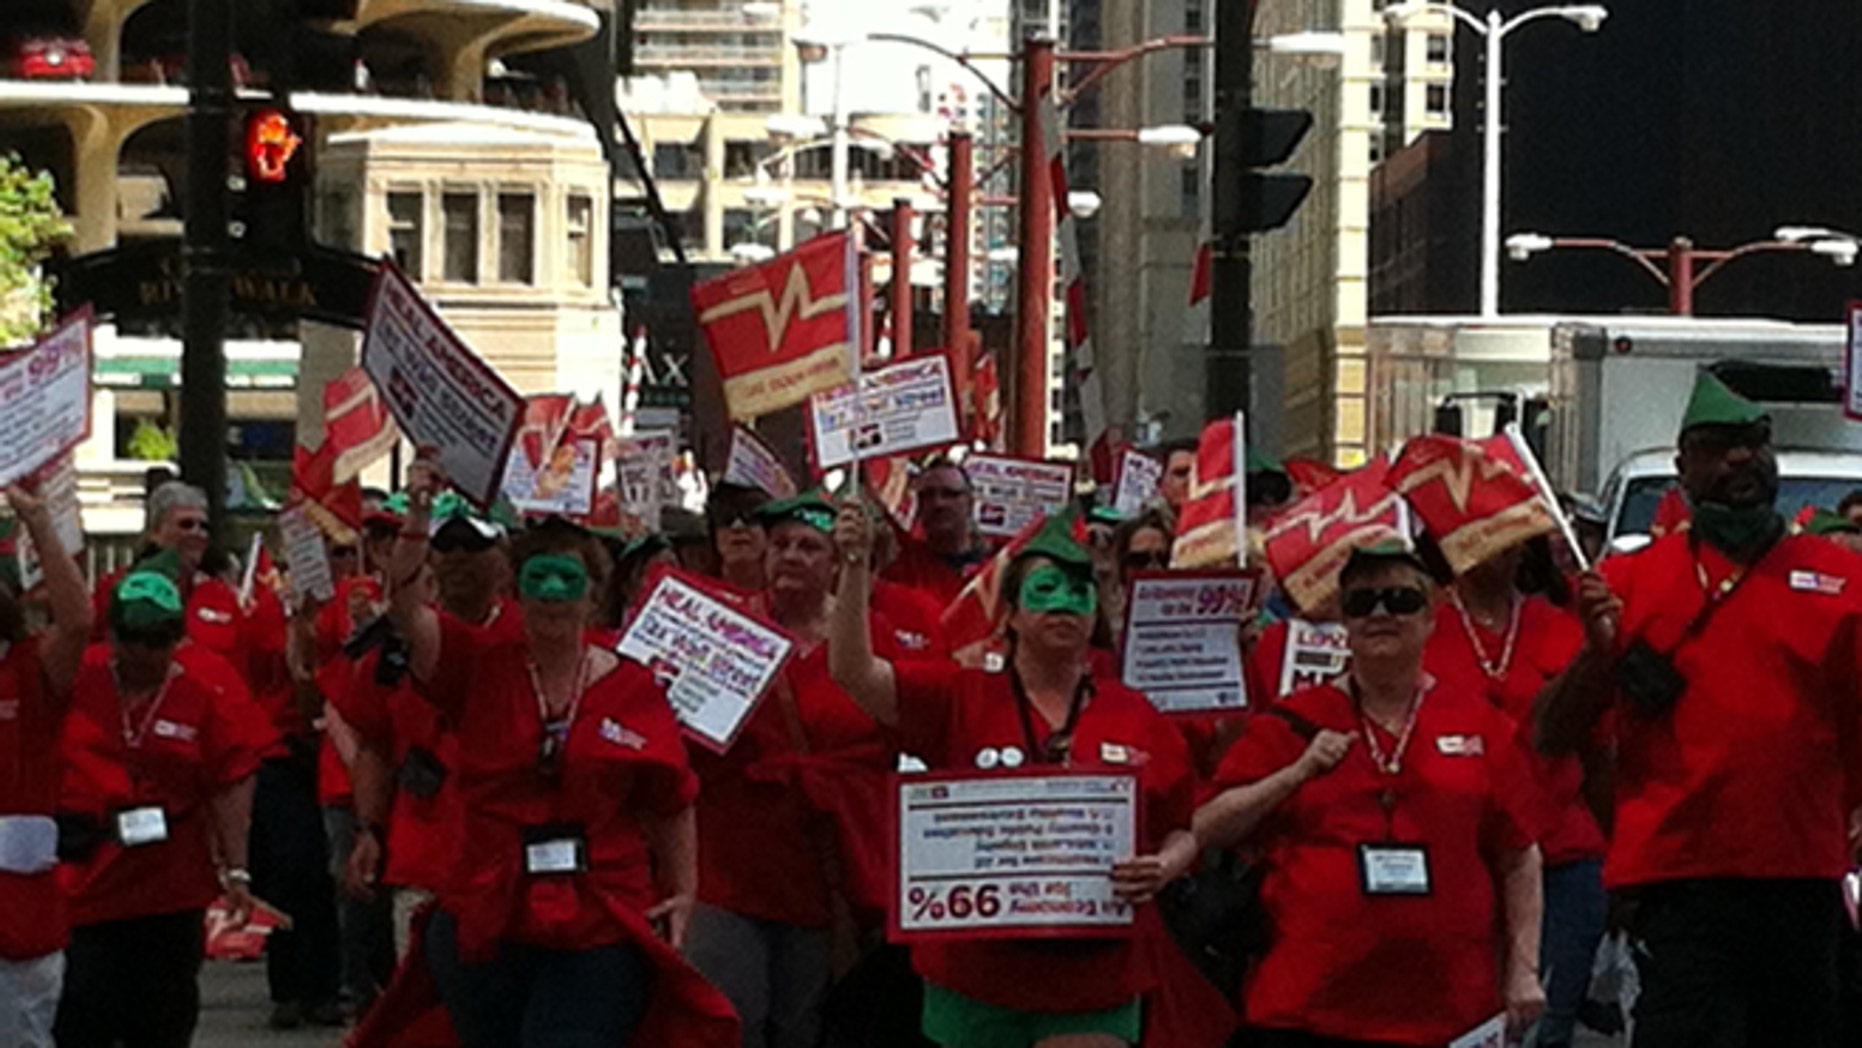 Friday, May, 18, 2012: The National Nurses United protest on Daley Plaza in Chicago.